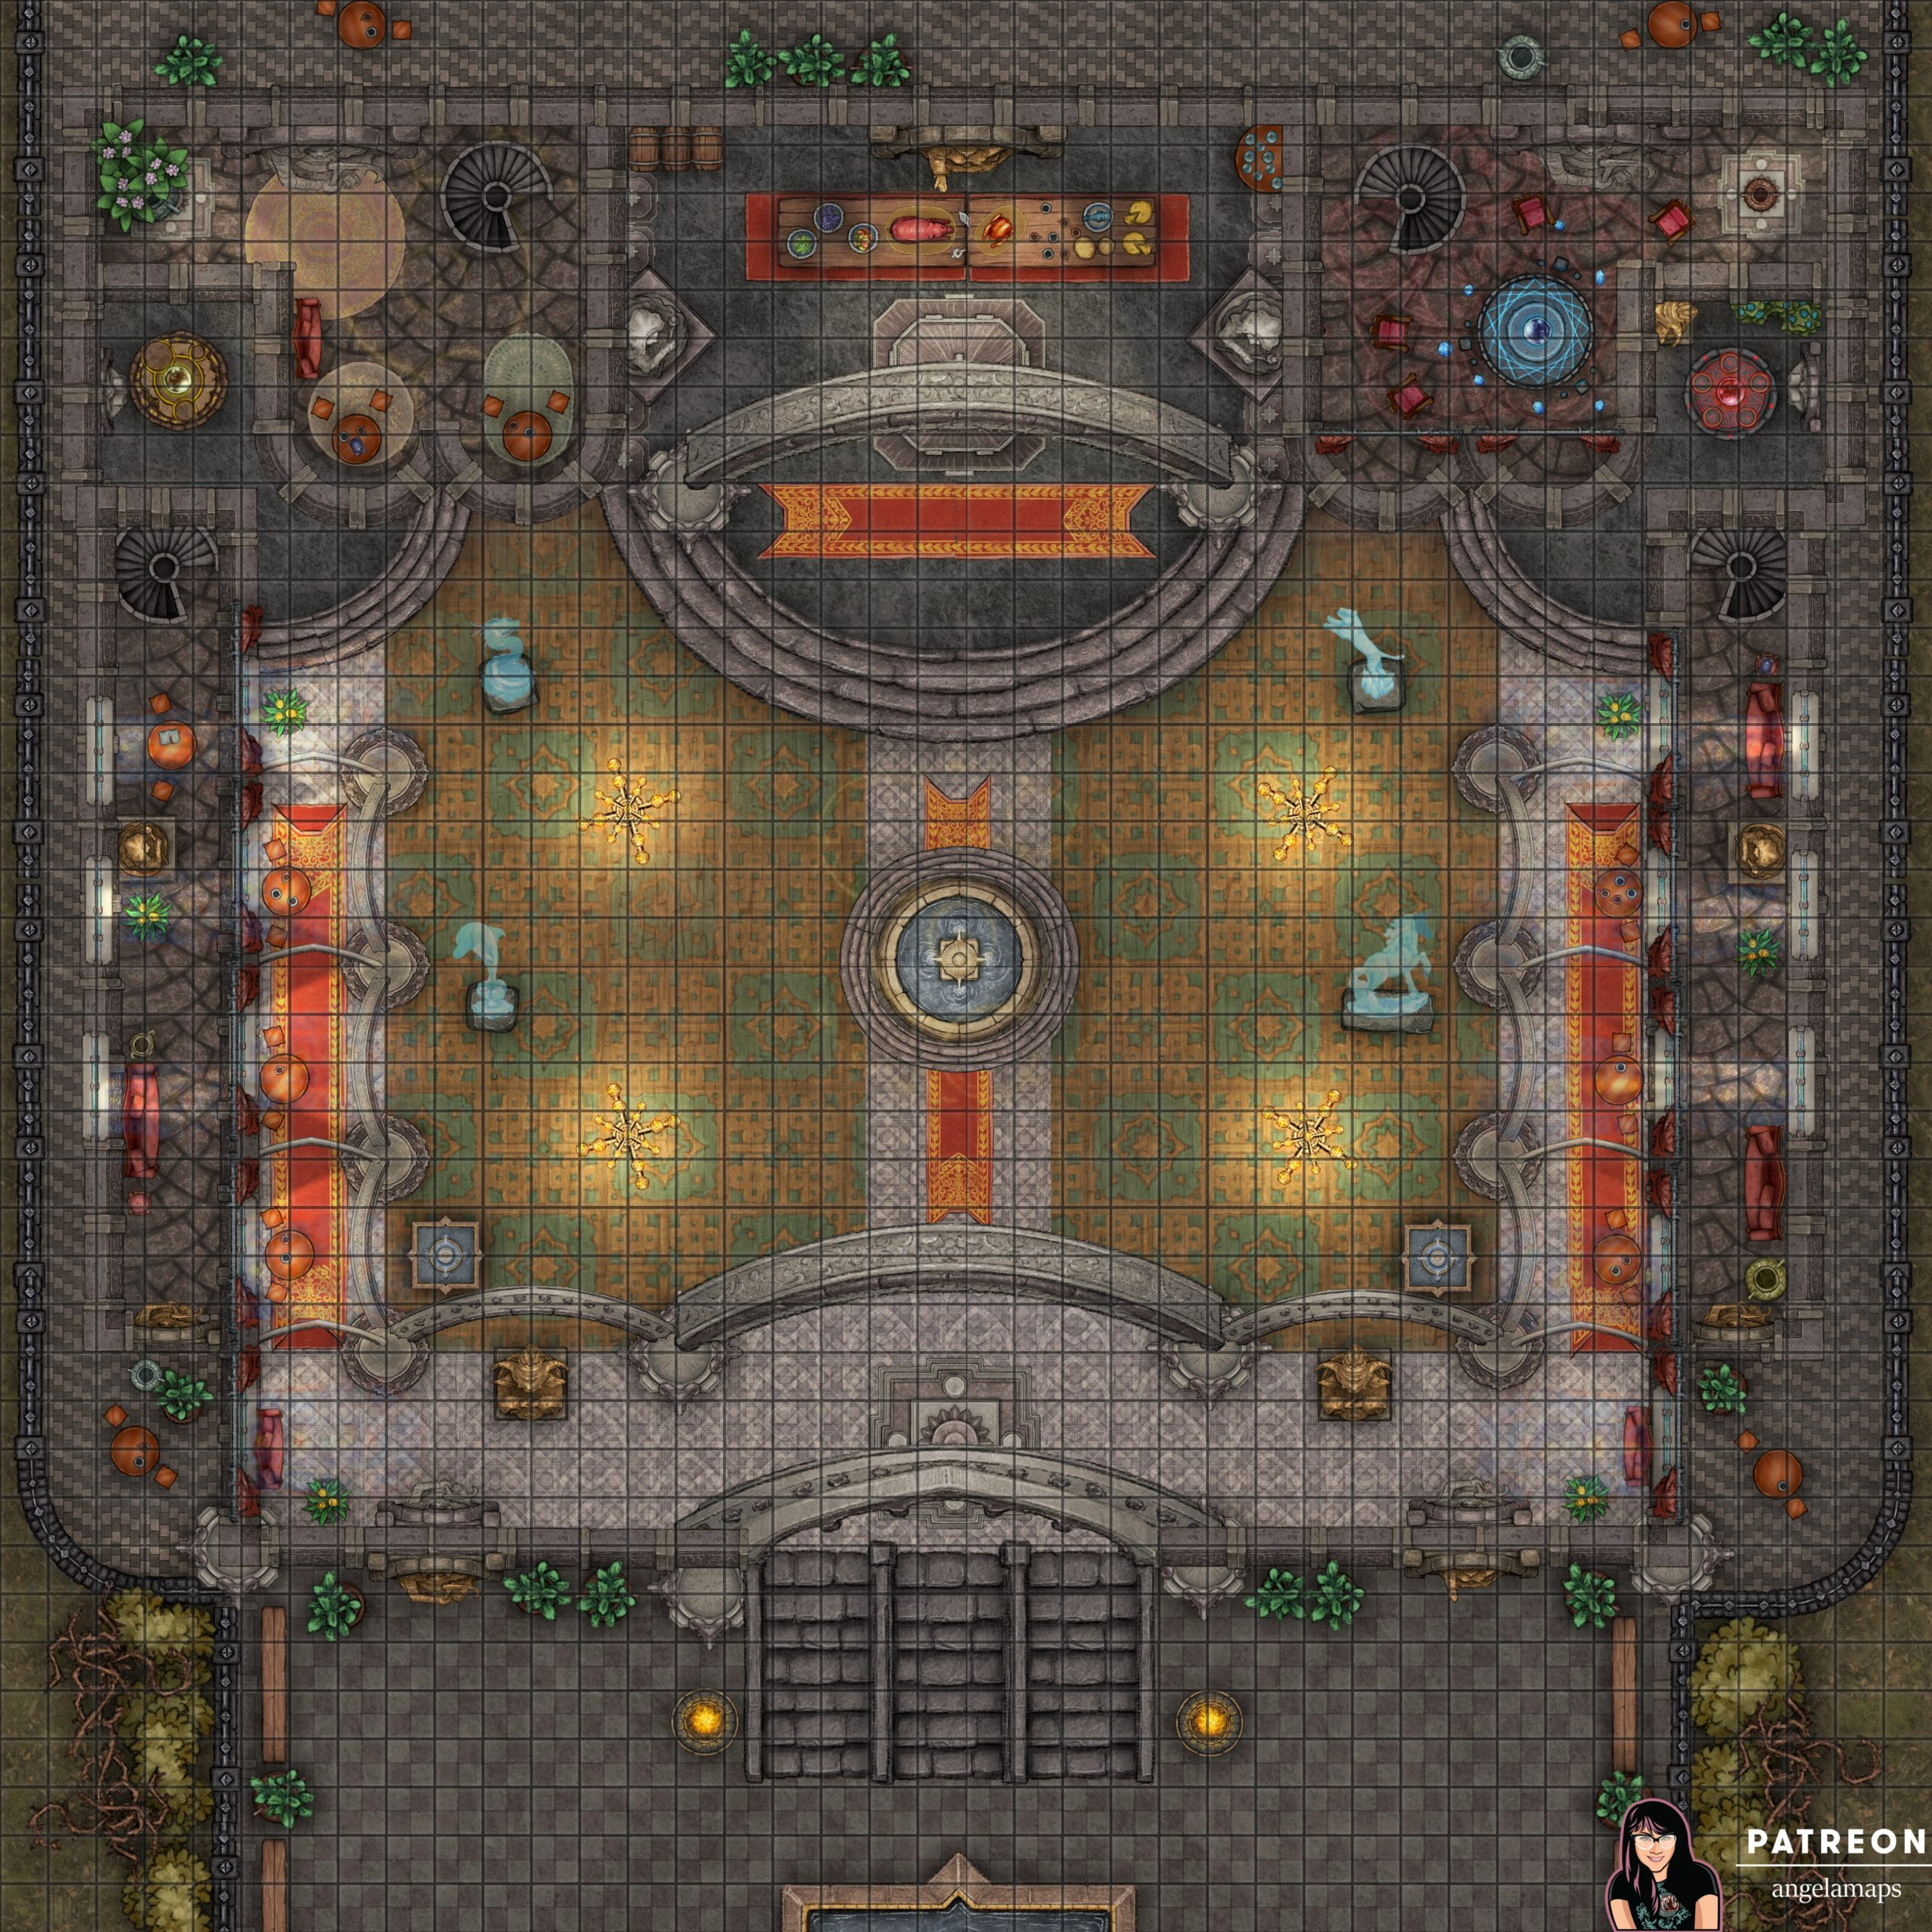 Grand ball room battle map encounter for D&D, pathfinder and TTRPGs with fantasy grounds support